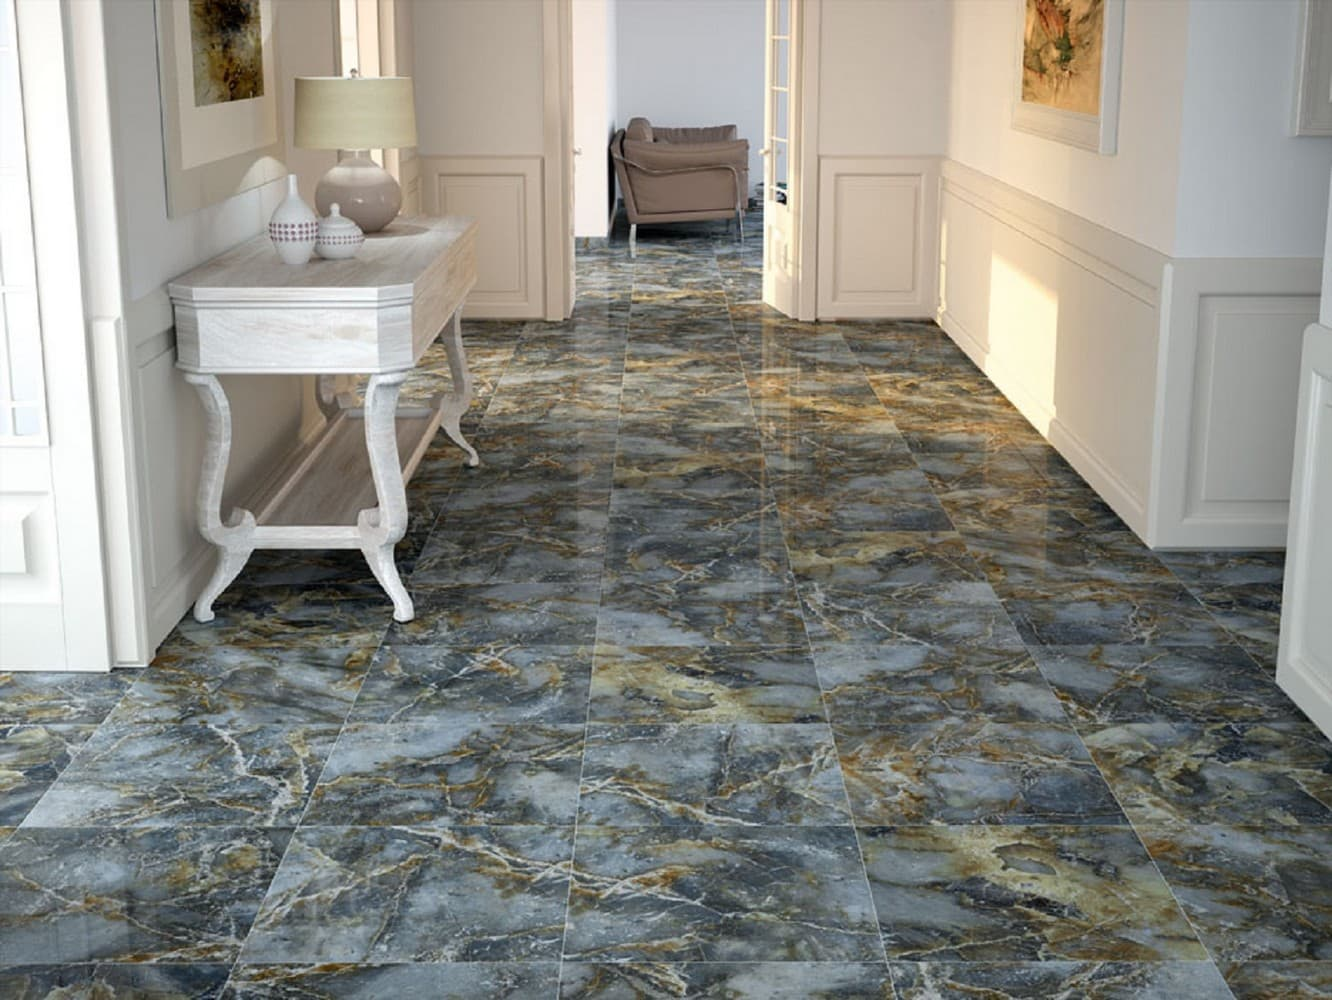 North haven ceramic tile